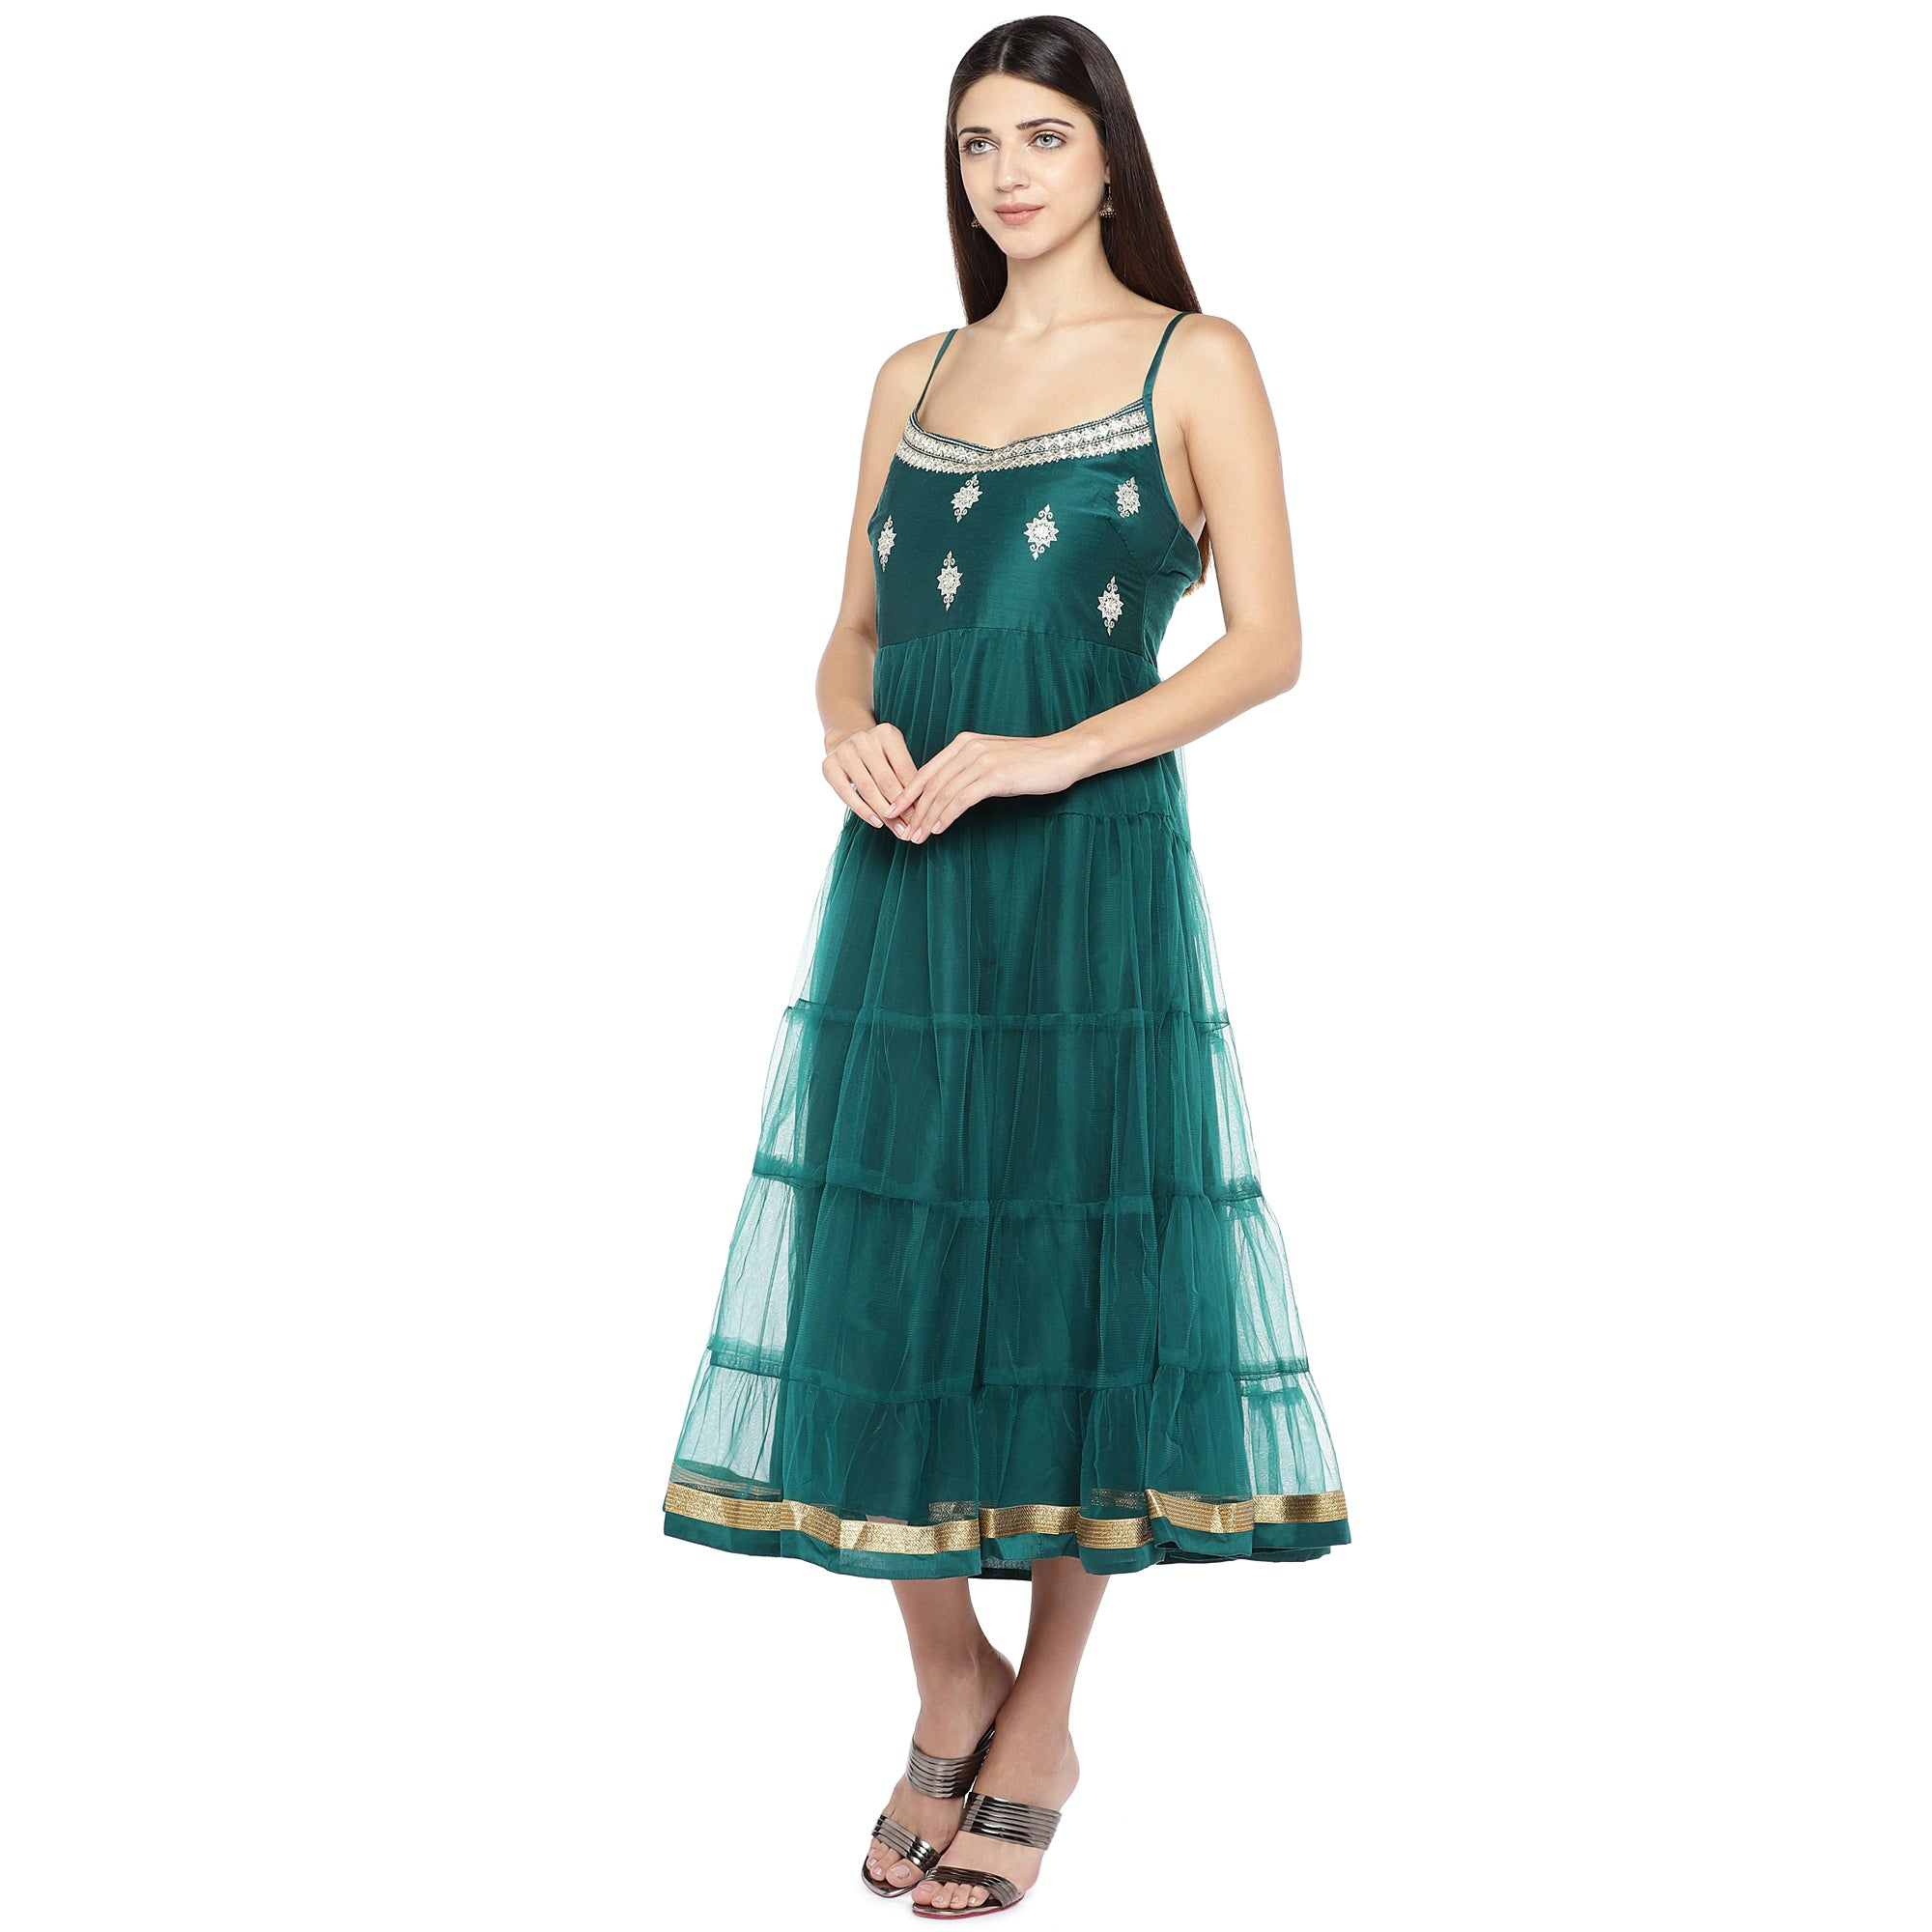 Teal Green Self Design Empire Dress-2